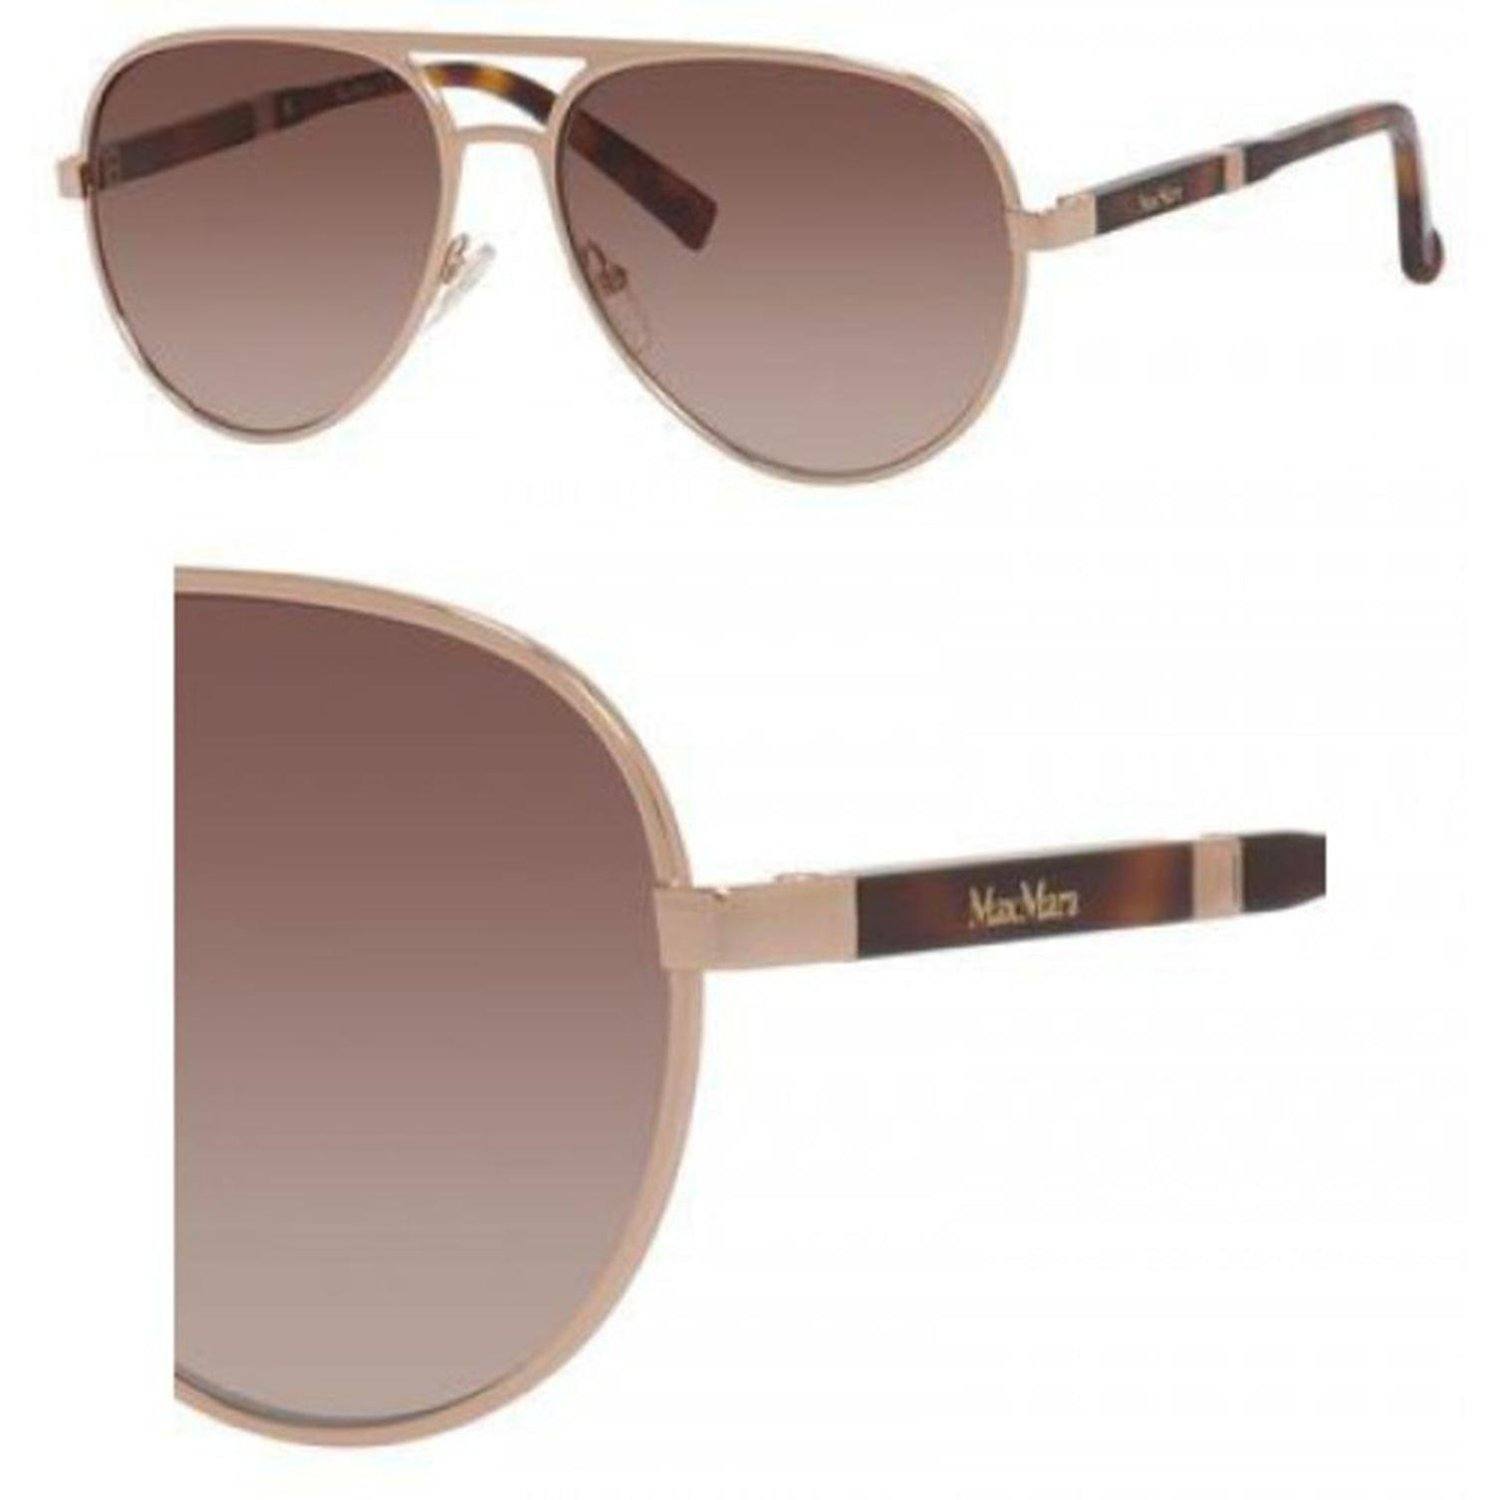 8c931aa1fb4 Get Quotations · Max Mara Max Mara Design S 0000 Rose Gold JD brown  gradient lens Sunglasses